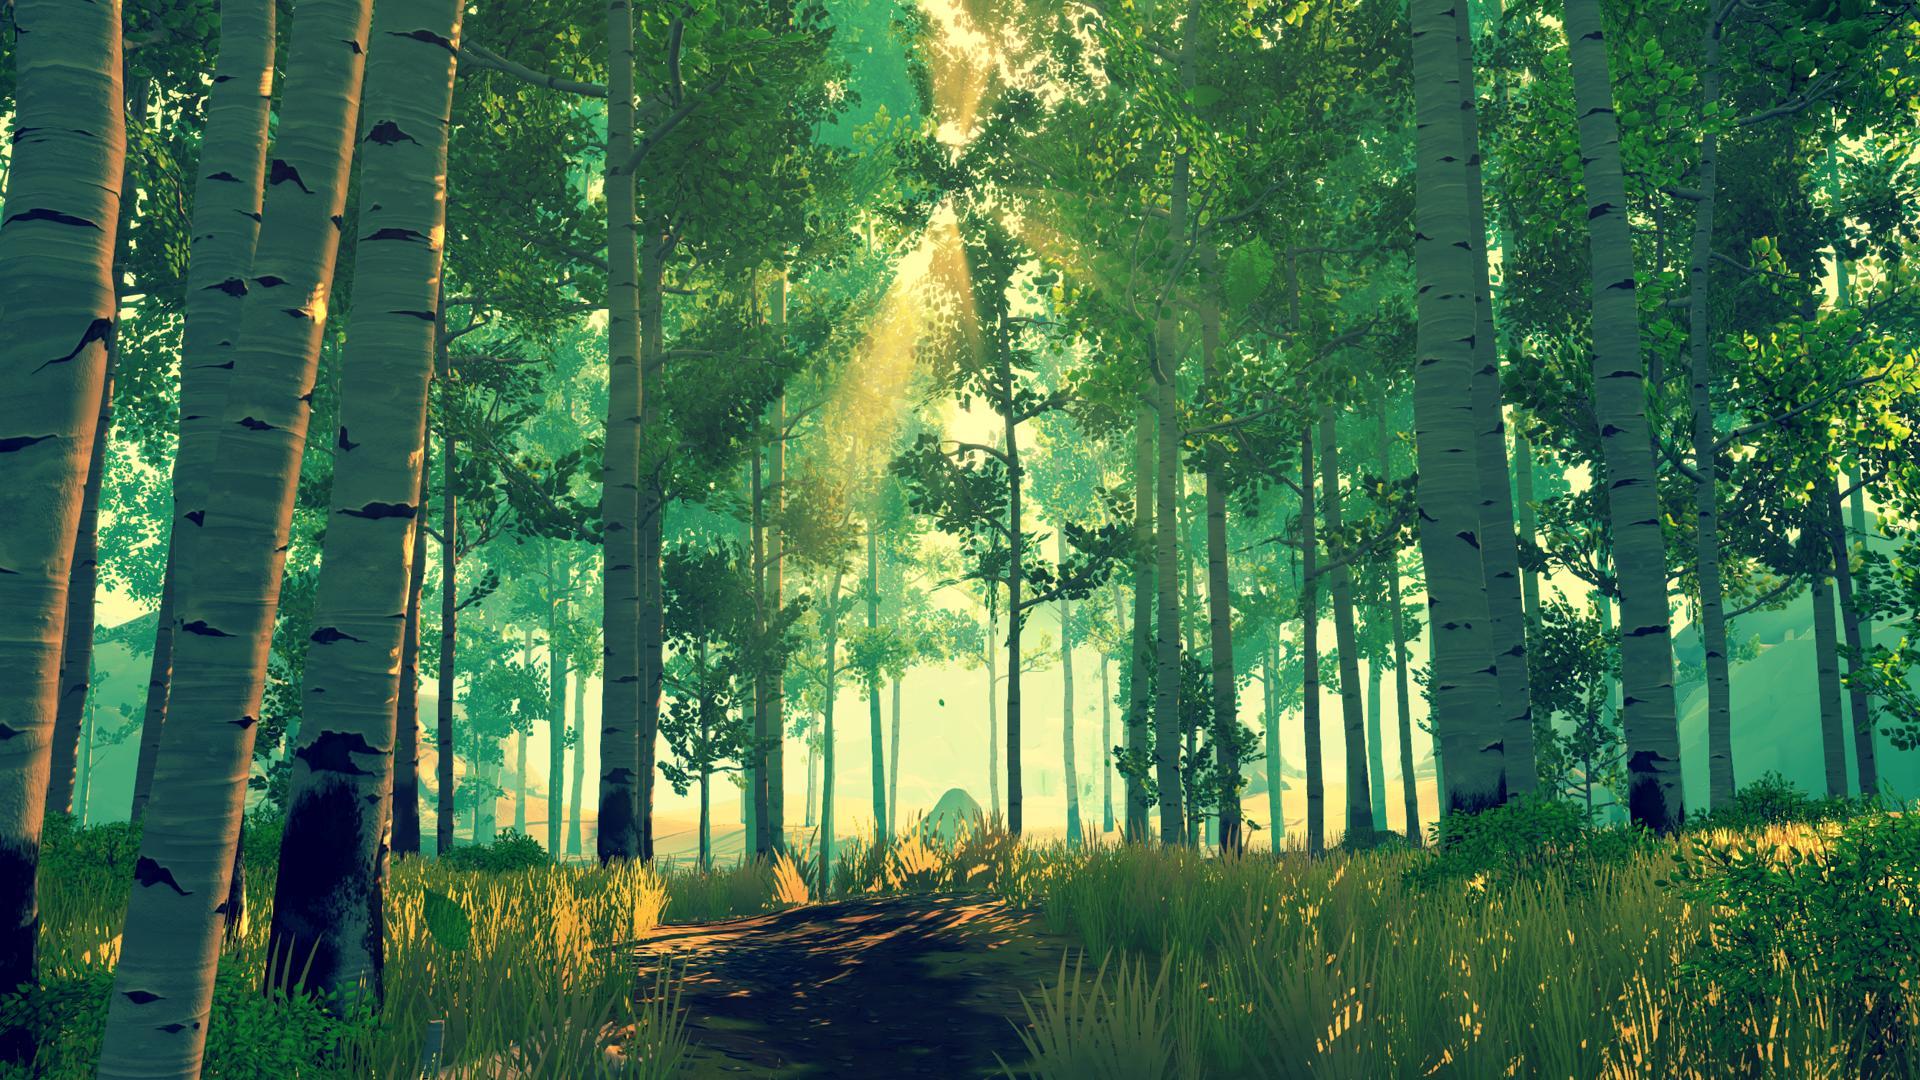 How the team behind Firewatch made a thrilling game about being alone